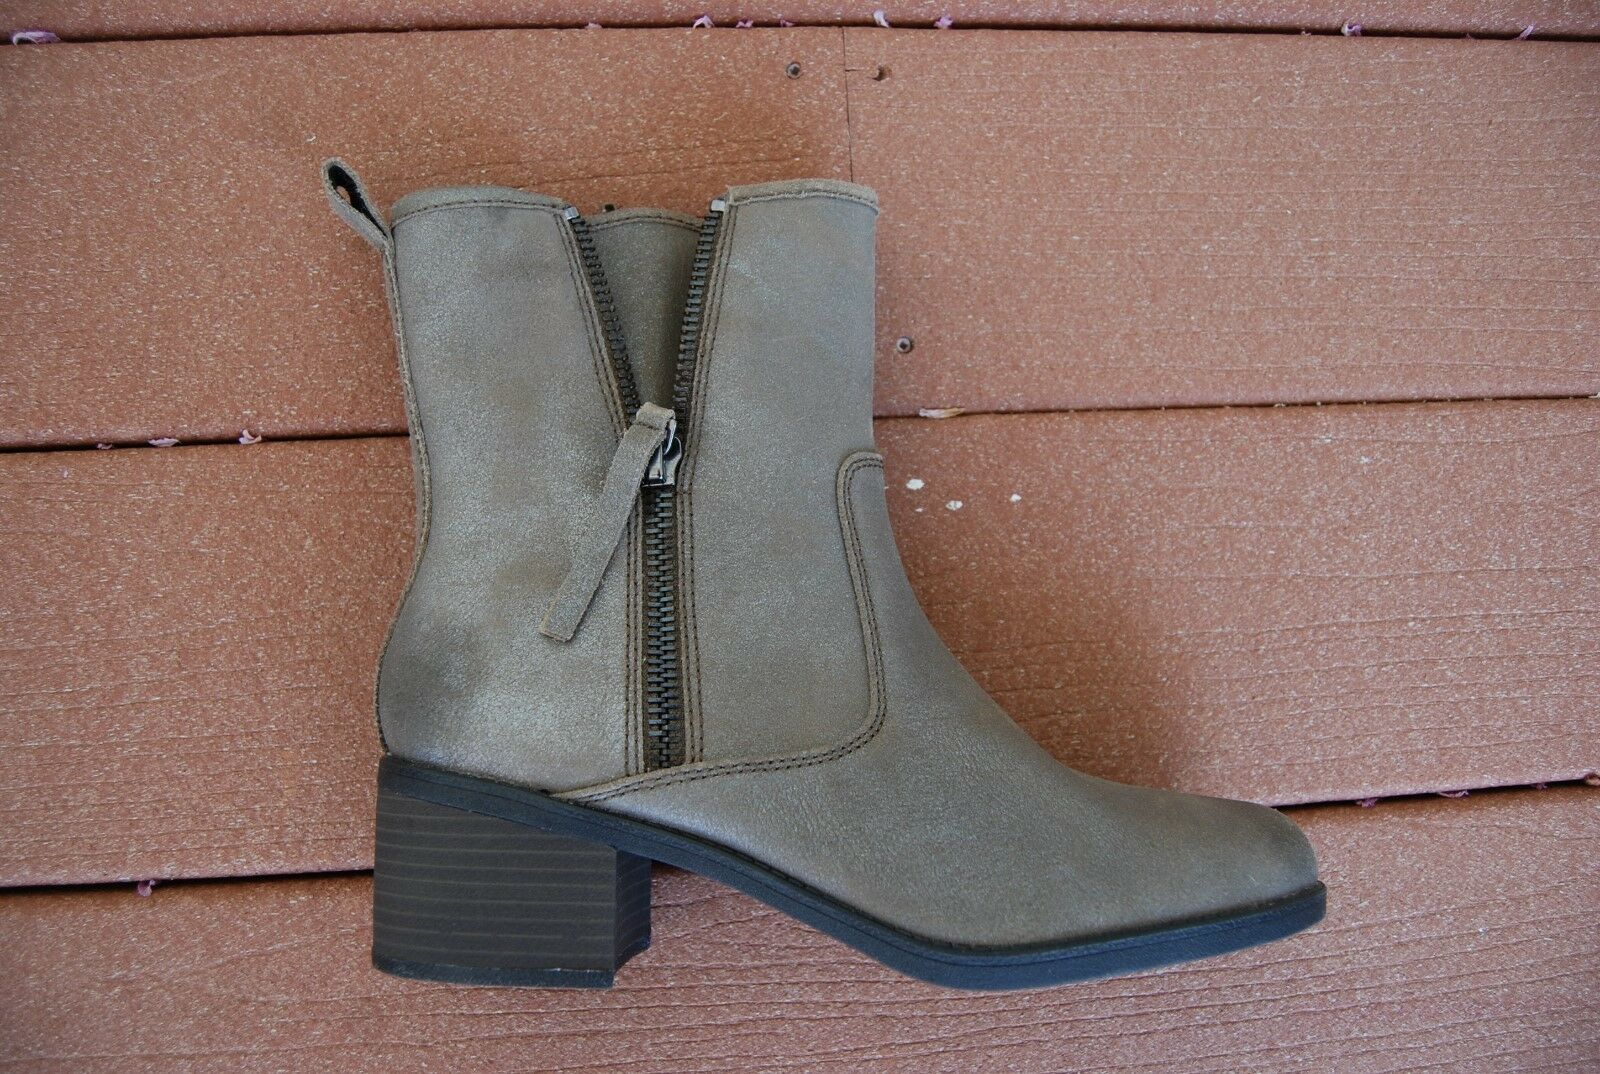 New Taupe Rough Leder Dbl Side Devon Zip CLARKS COLLECTION Nevella Devon Side Stiefel 10 M c25918